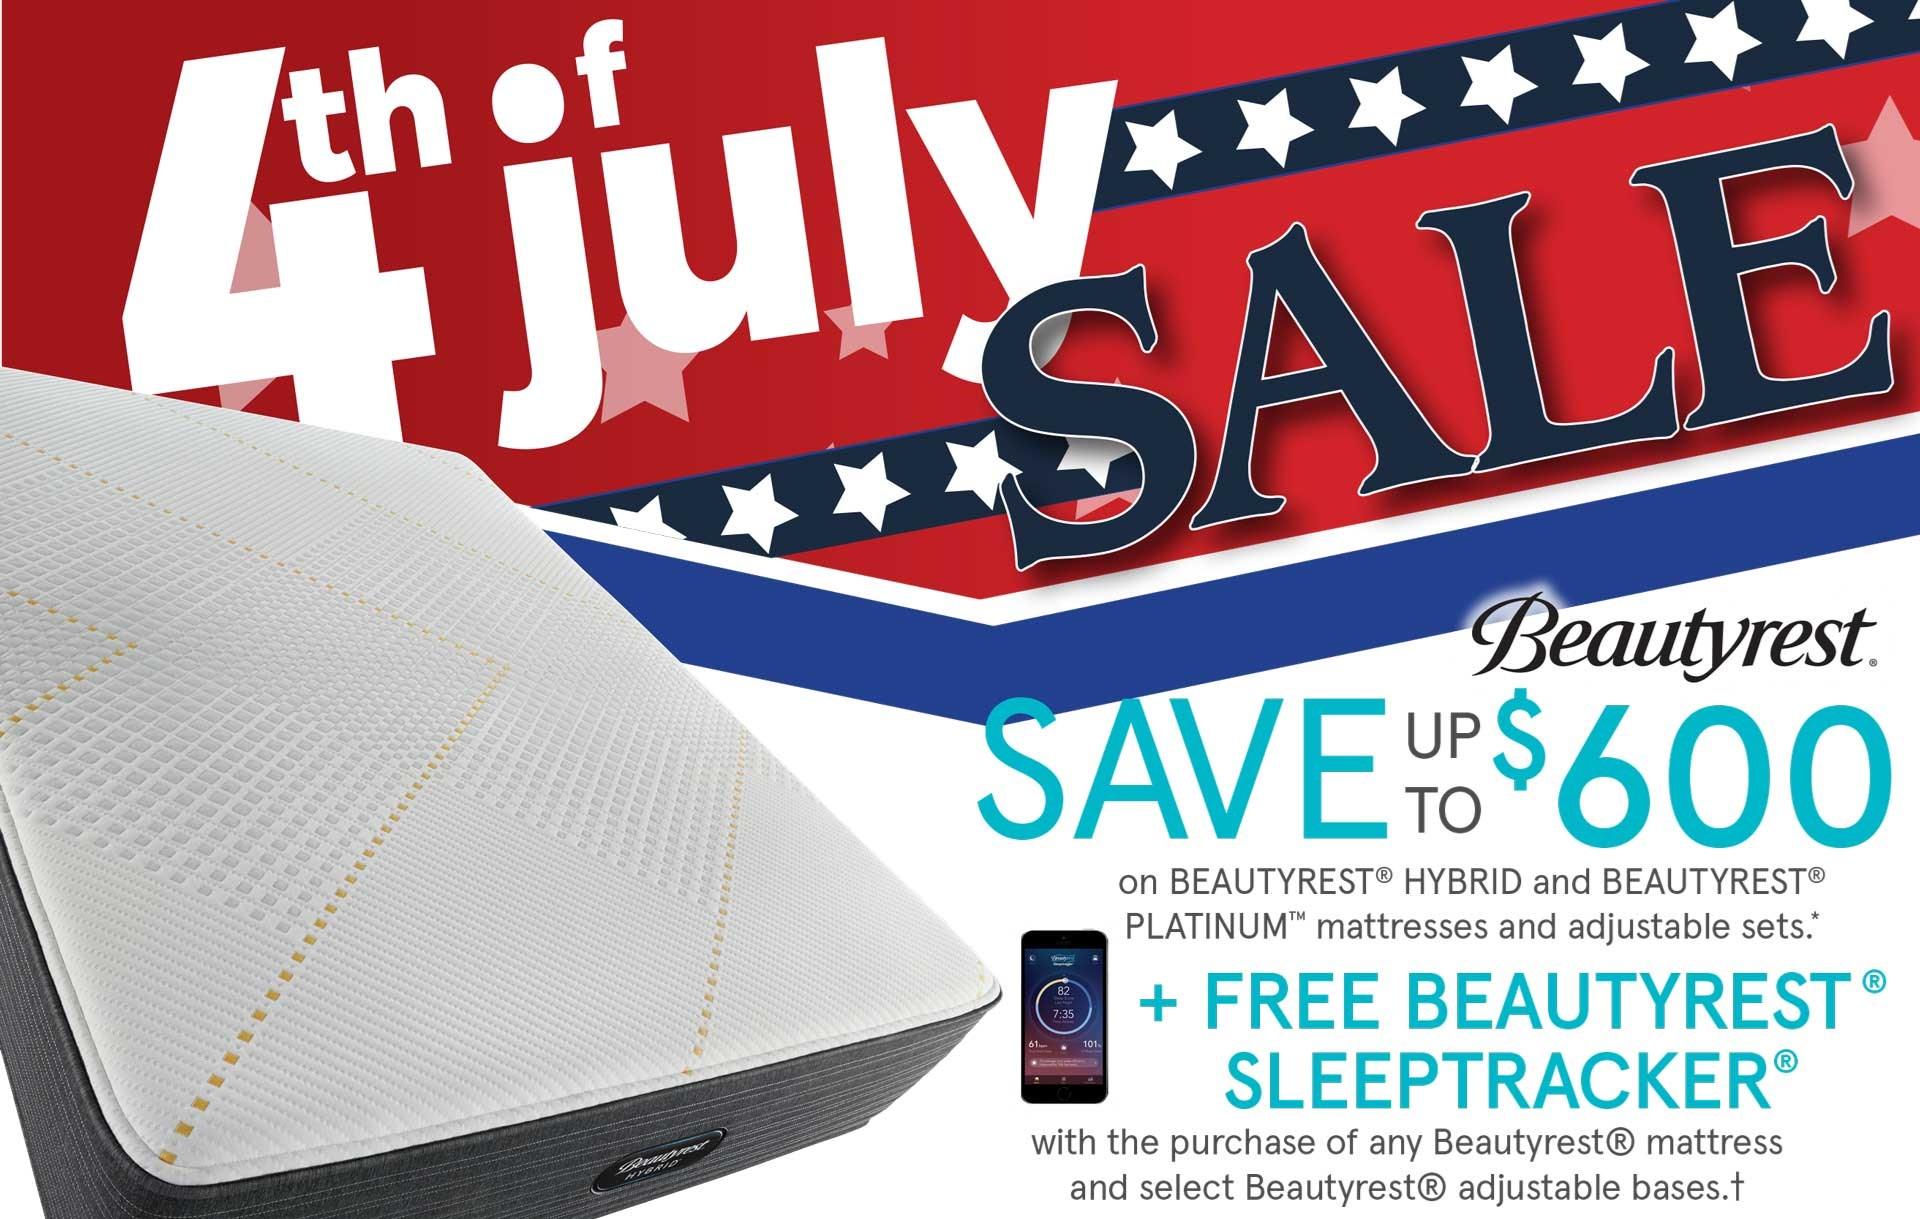 July 4th Sale! Up to $600 off select Beautyrest